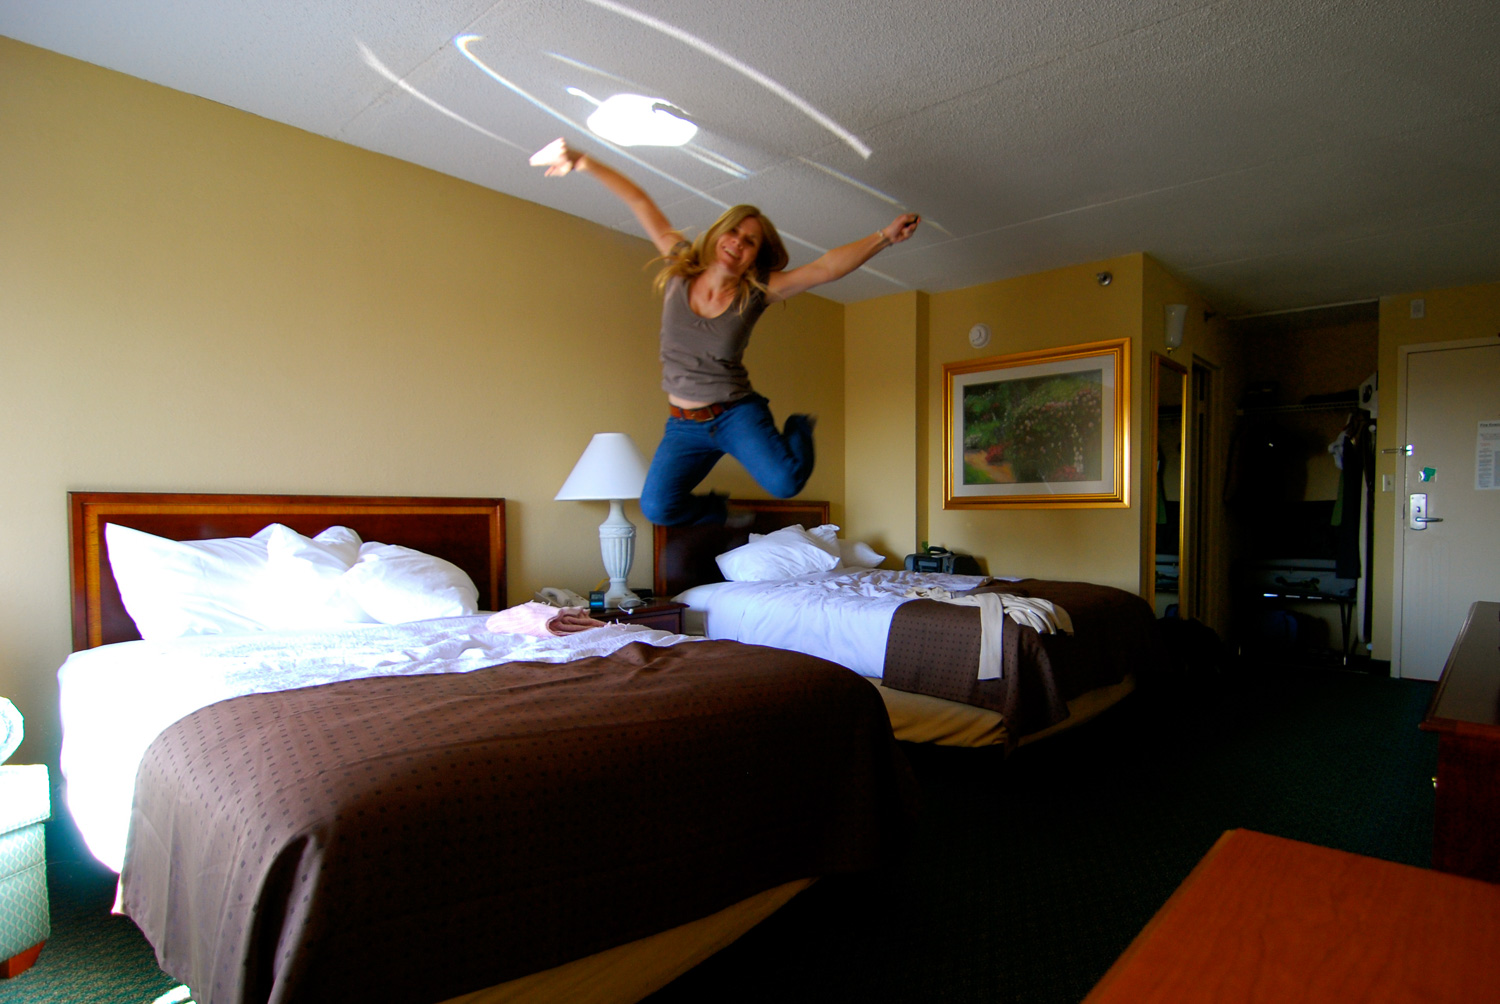 Woman jumping on hotel bed.